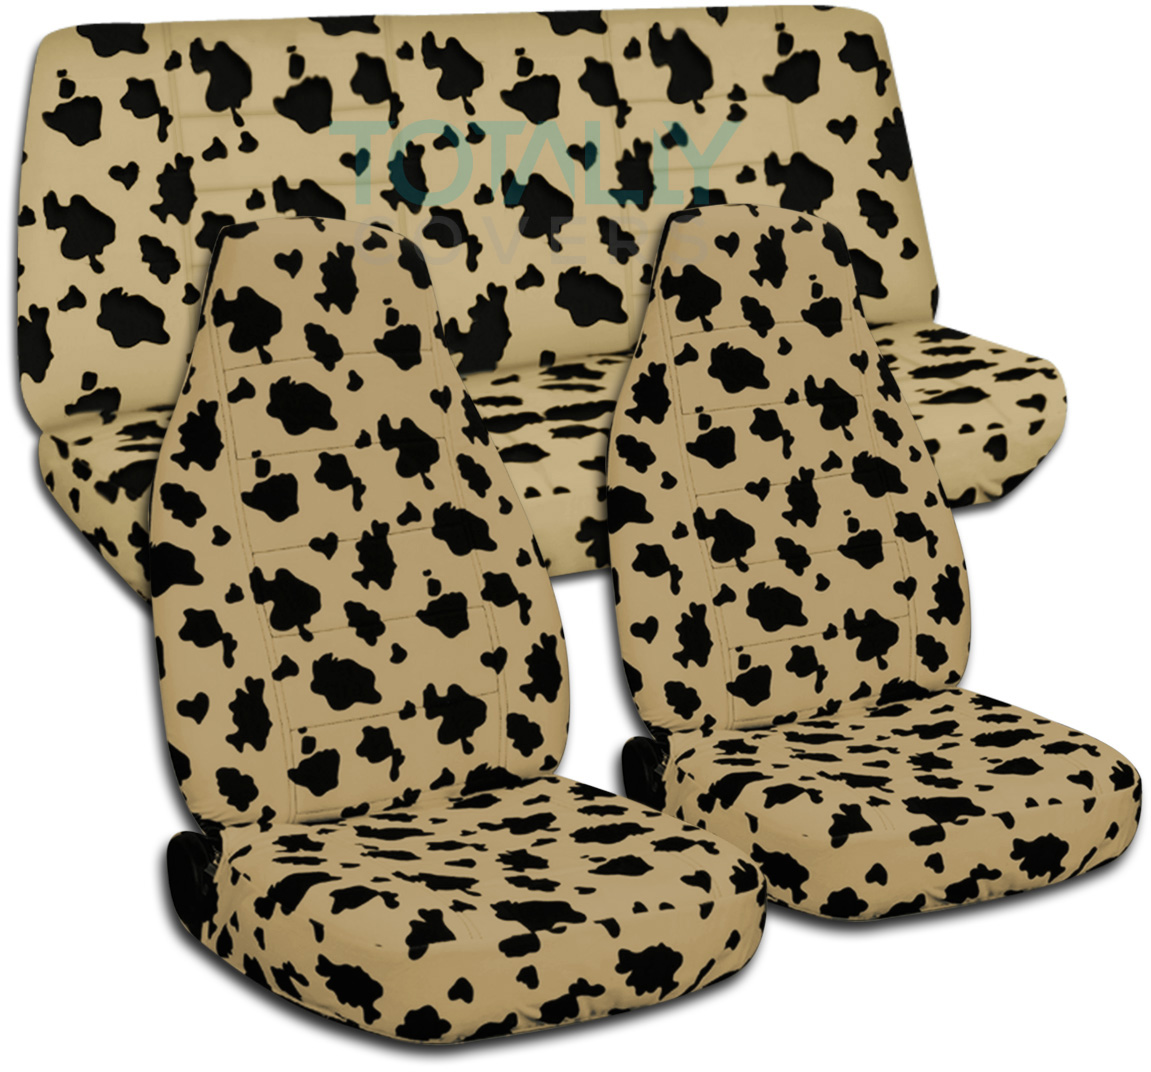 Animal Print Seat Covers Cow Seat Covers Cheetah Seat